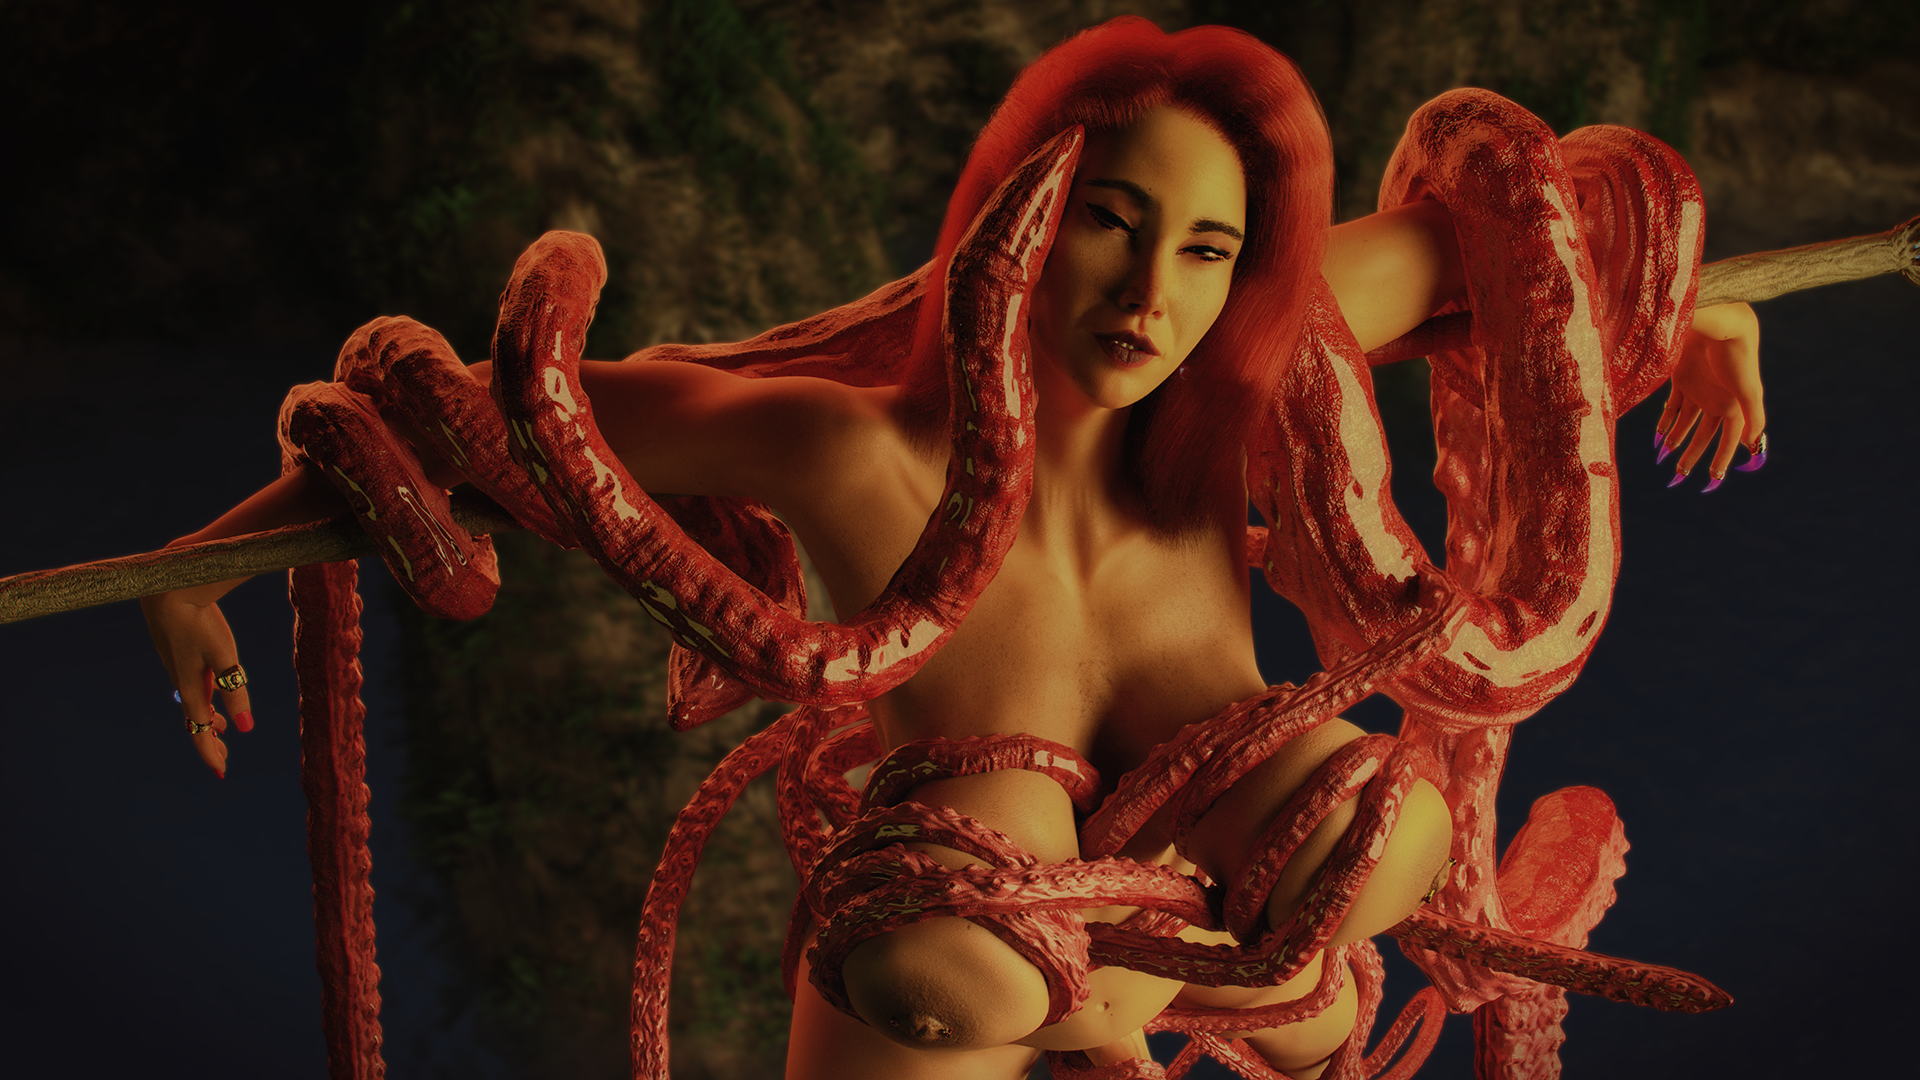 BRI AND TENTACLE MONSTER 9